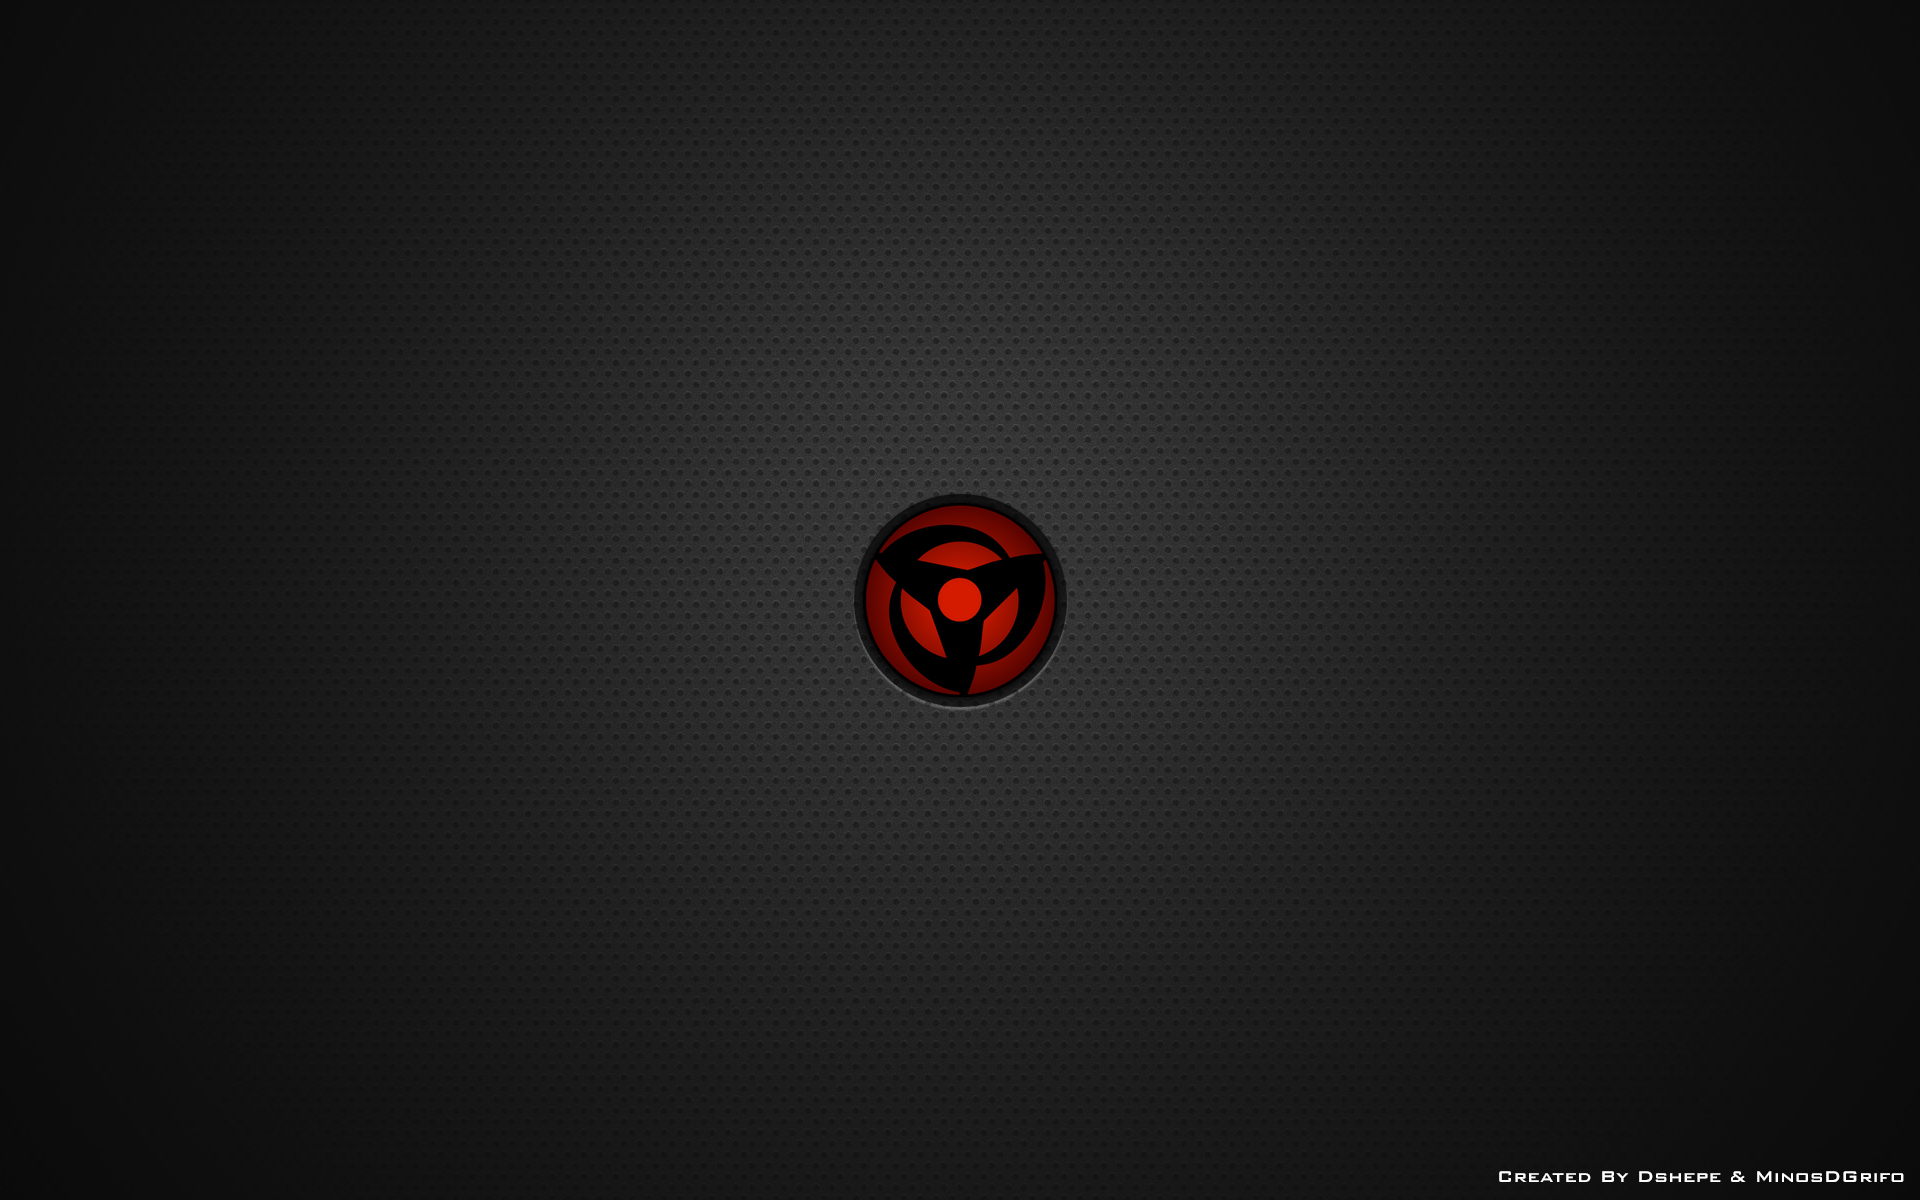 48 Hd Sharingan Wallpaper On Wallpapersafari